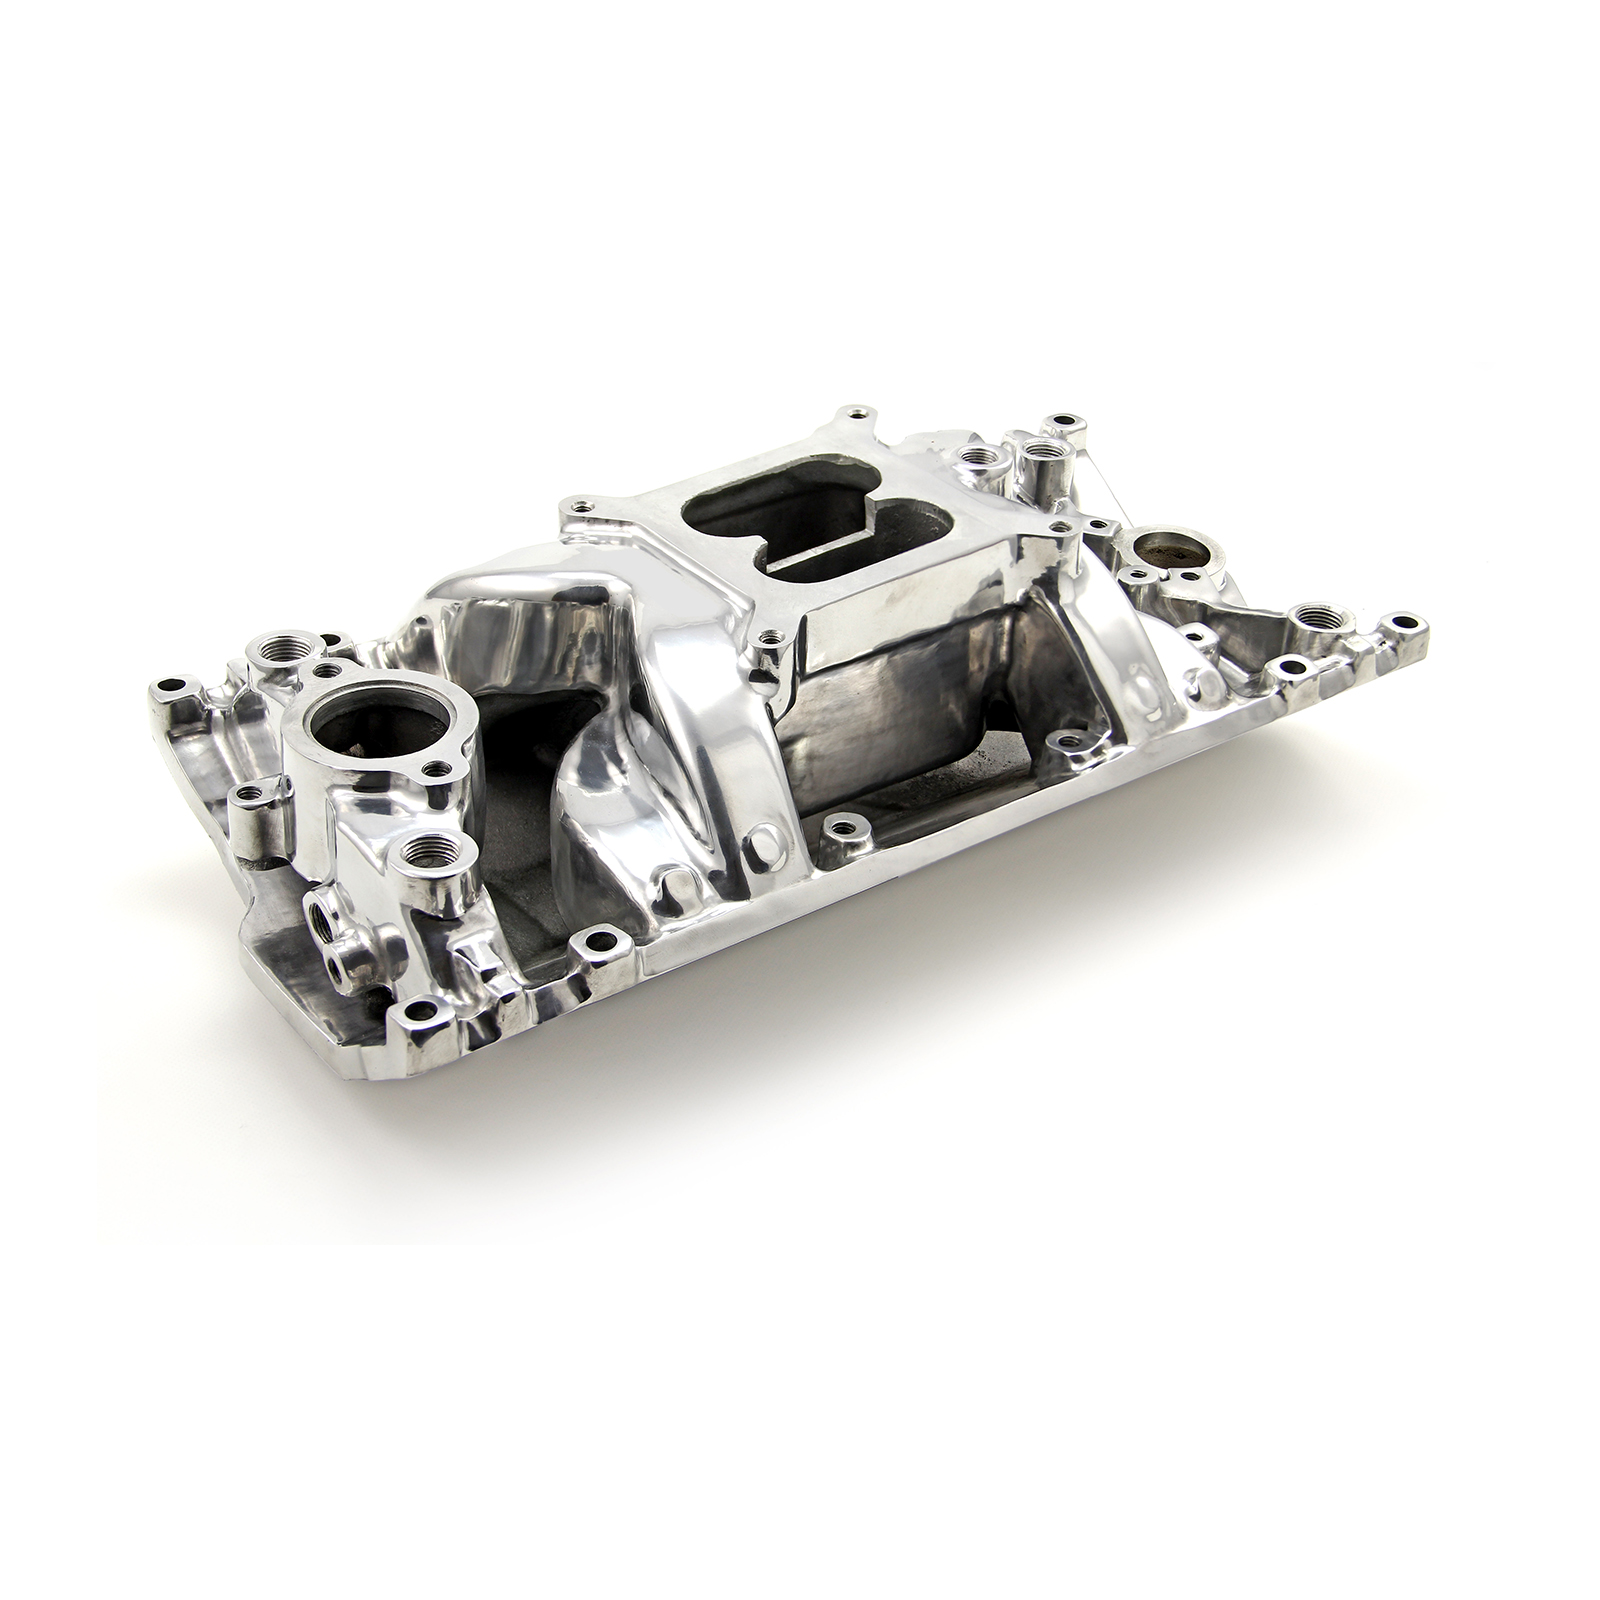 Chevy SBC 350 Eliminator Vortec Intake Manifold Polished